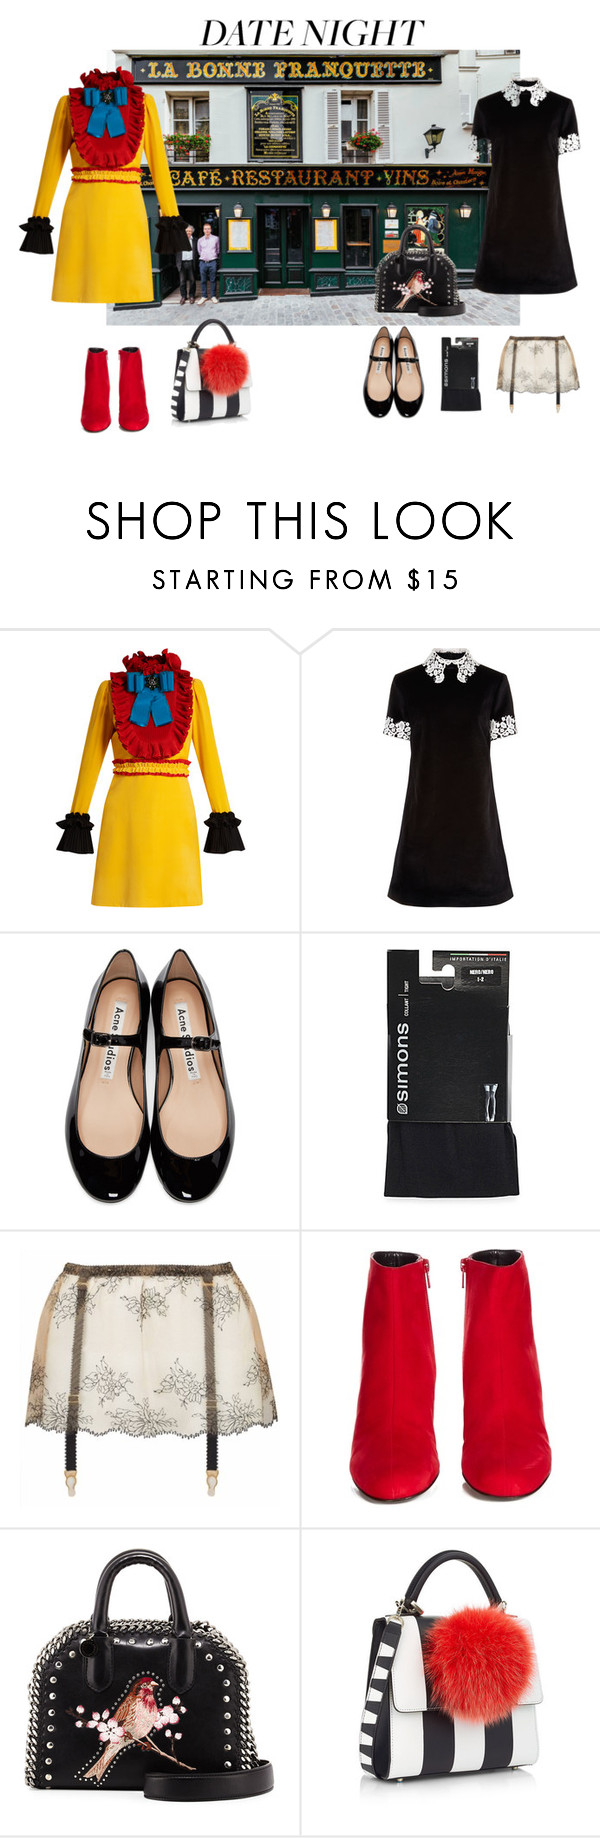 """""""DATE NIGHT"""" by susibonvi ❤ liked on Polyvore featuring Gucci, macgraw, Acne Studios, Edge o' Beyond, Yves Saint Laurent, STELLA McCARTNEY and Les Petits Joueurs"""